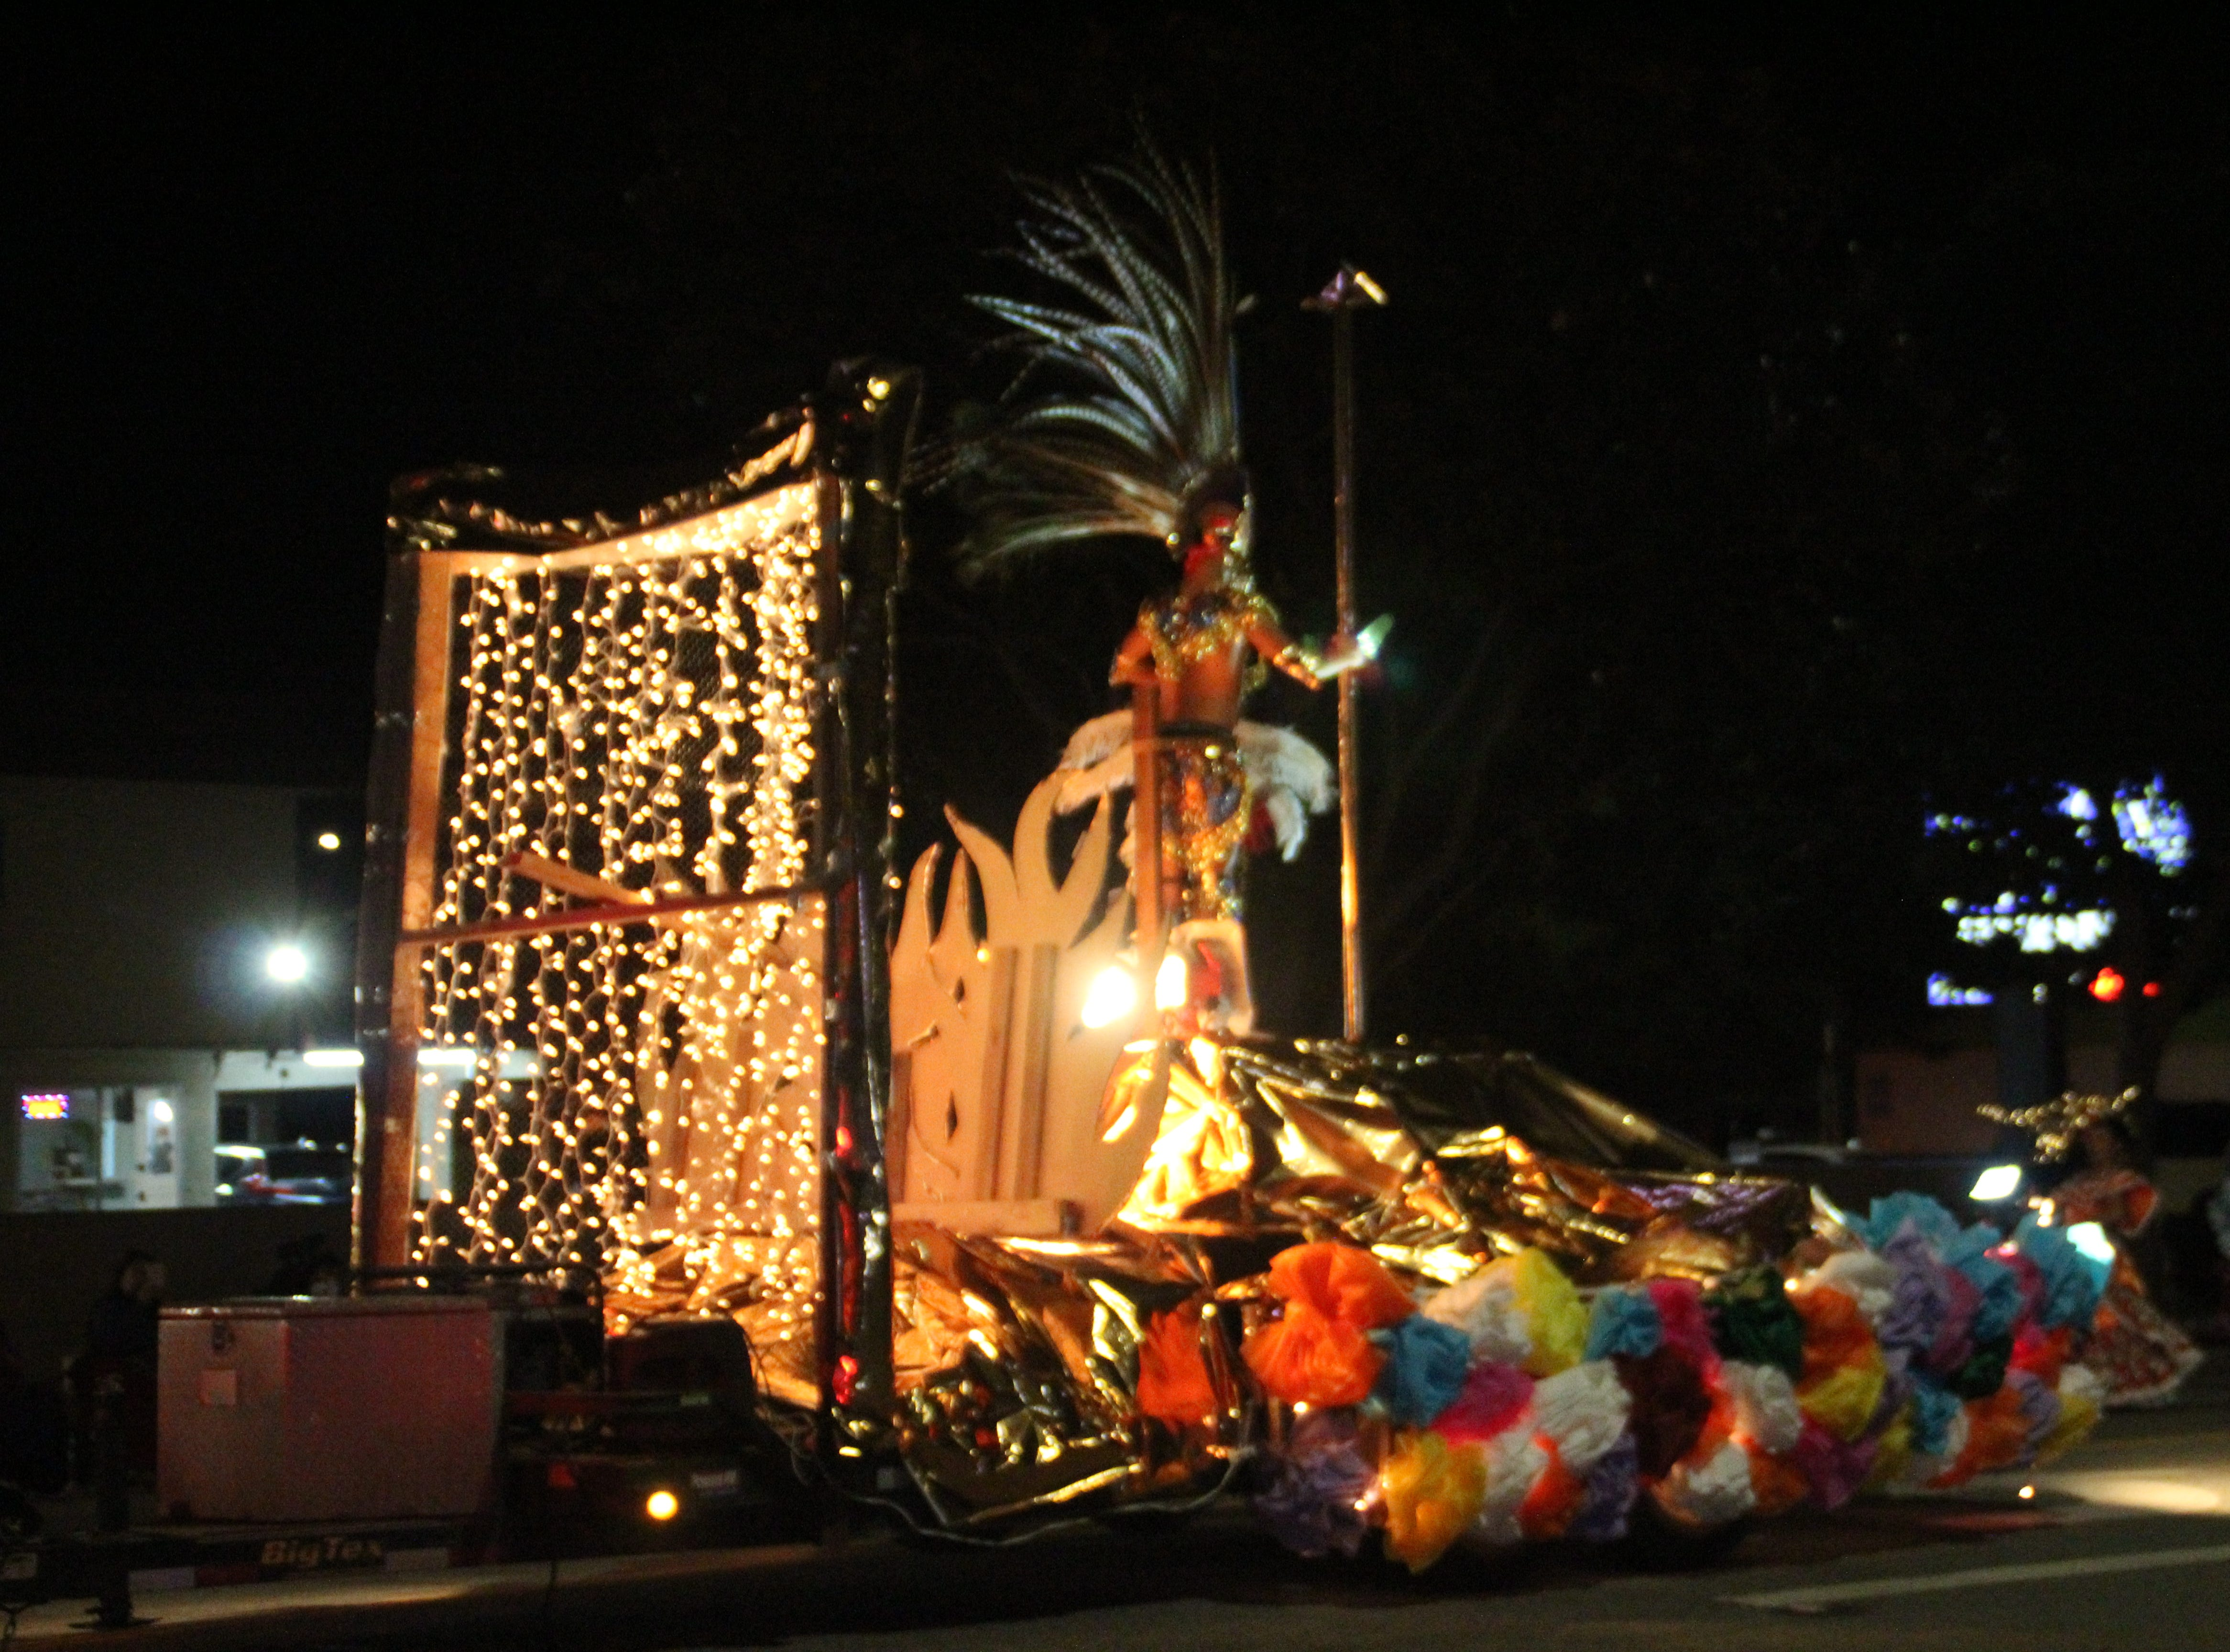 The Tonatiuh Danzantes float features an Aztec leader in front of a group of Mexican dancers.